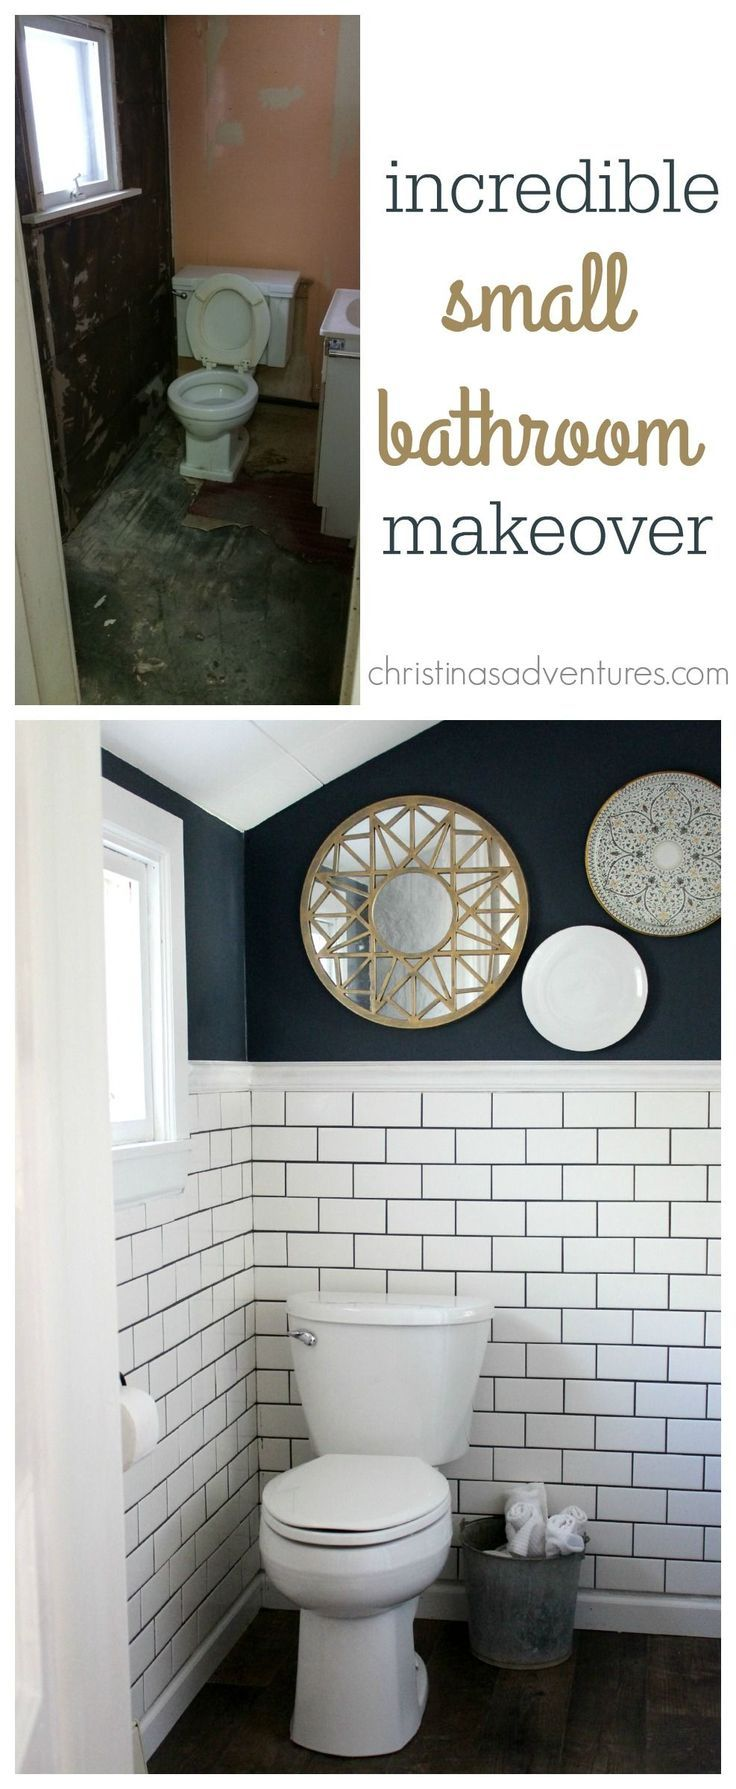 small bathroom makeover bathroom makeover remodel small rh pinterest com